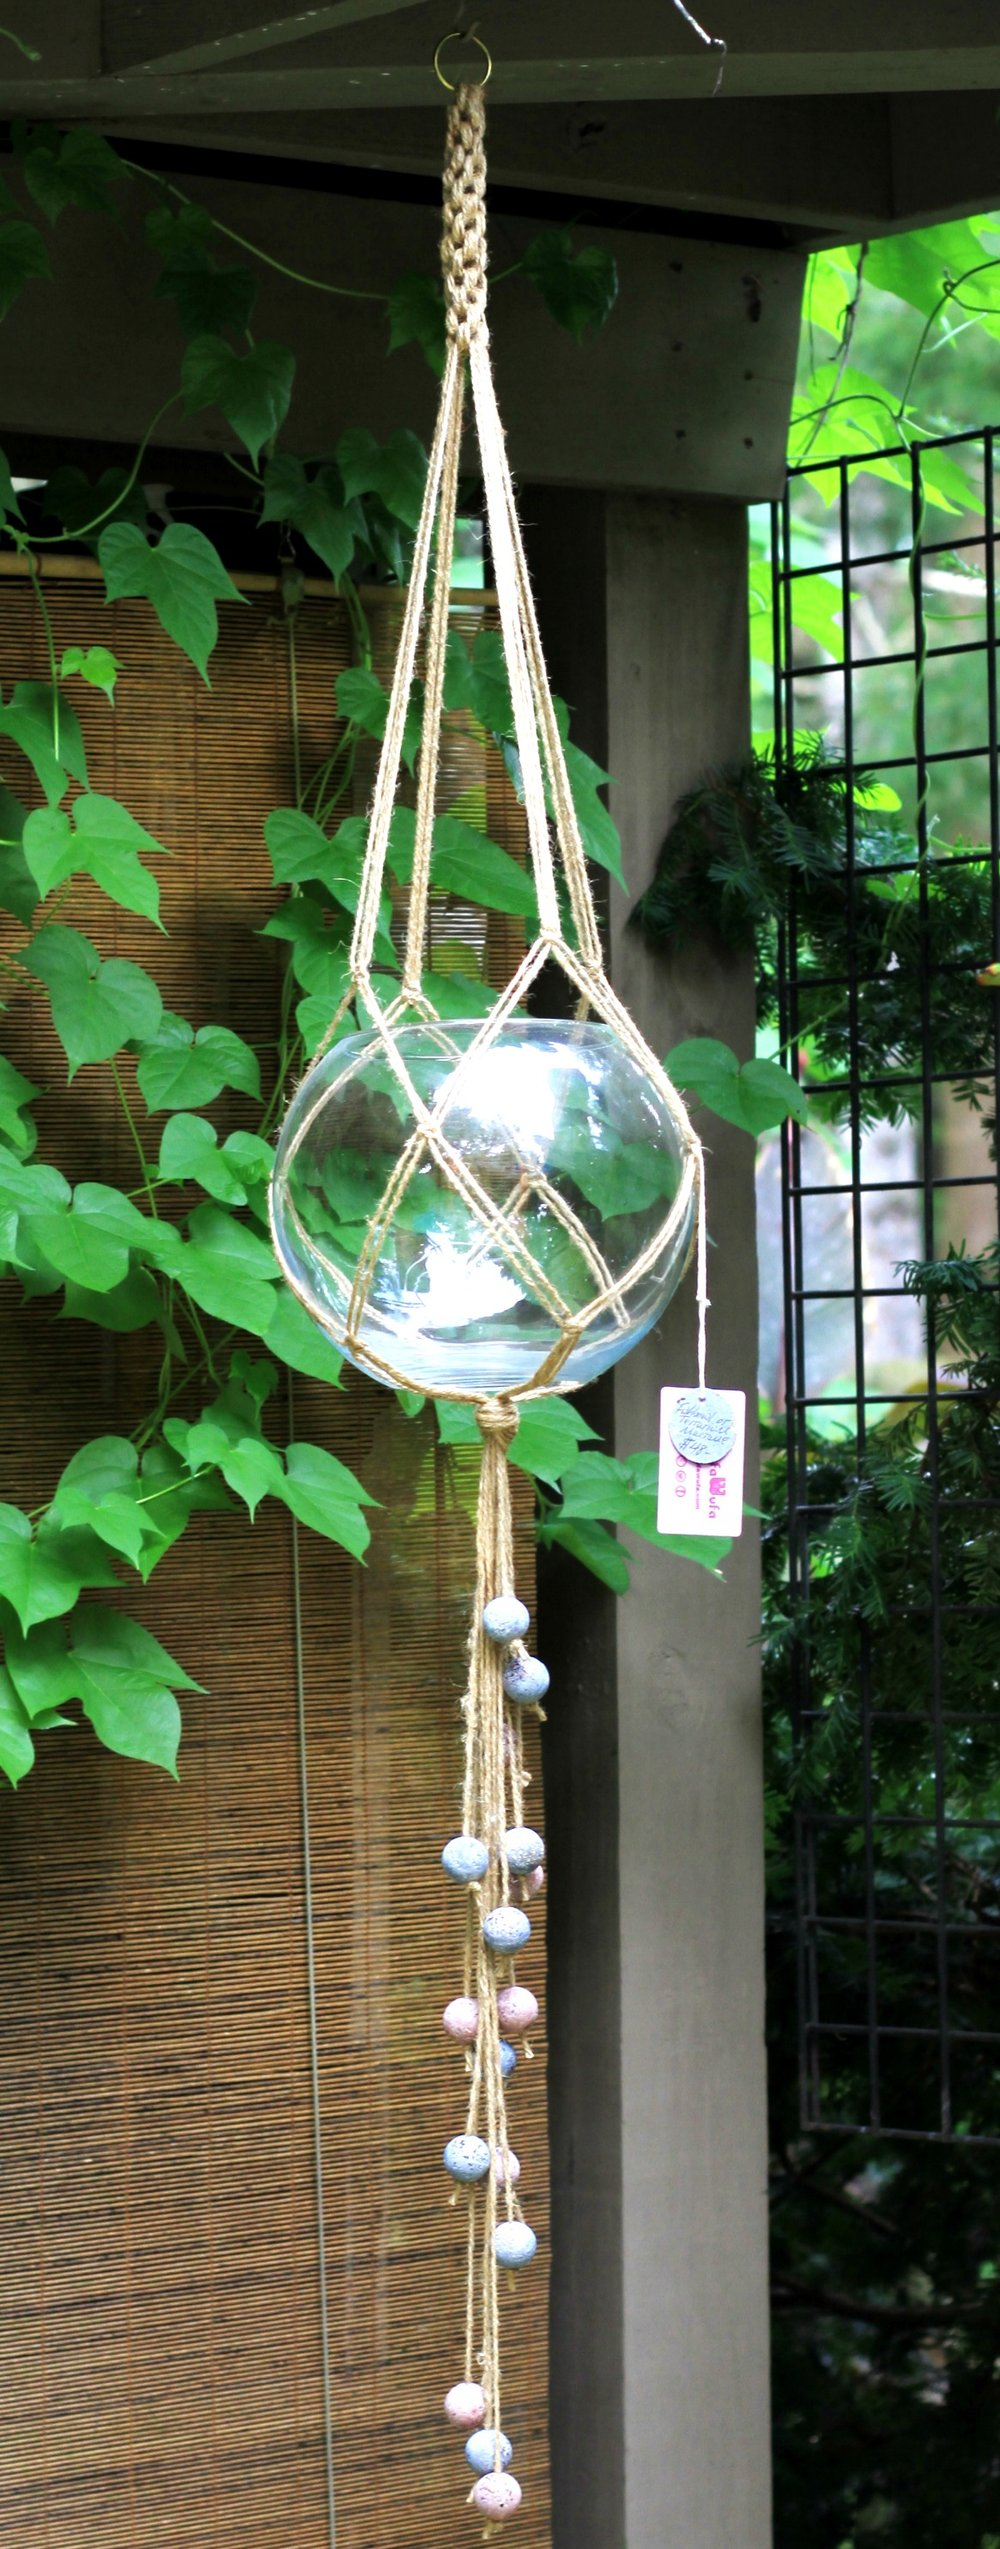 Terrarium or fish bowl in a jute macramé hanger w/ hypertufa beads.